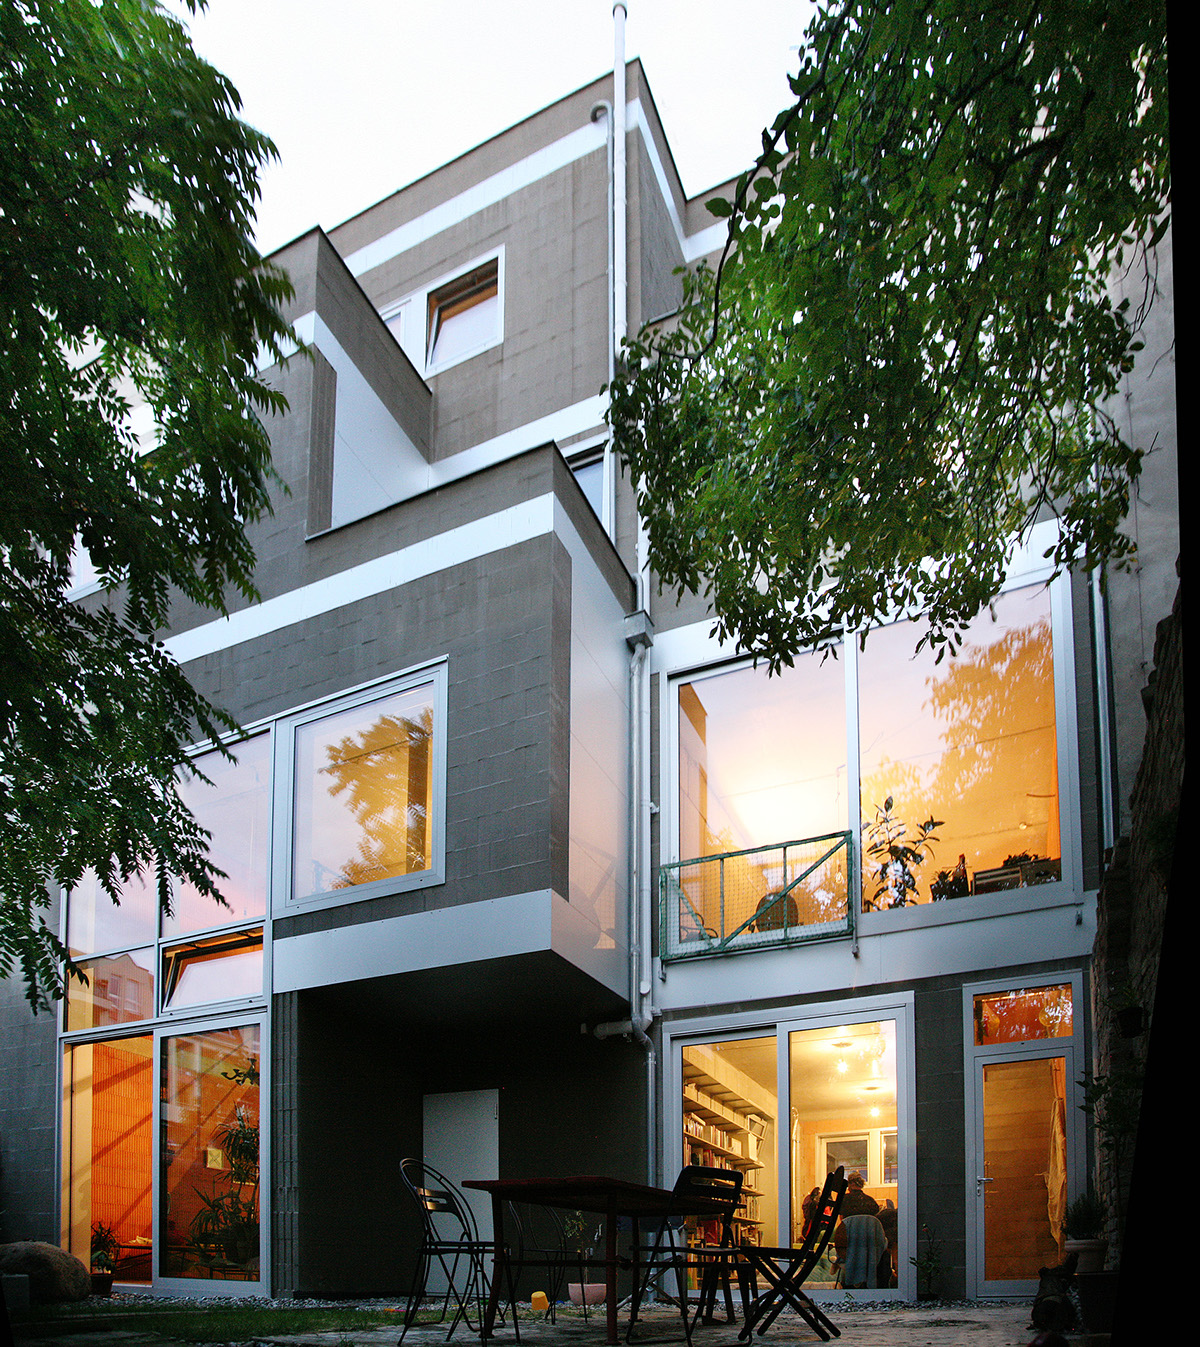 Stacked House Berlin, Weissensee on Behance